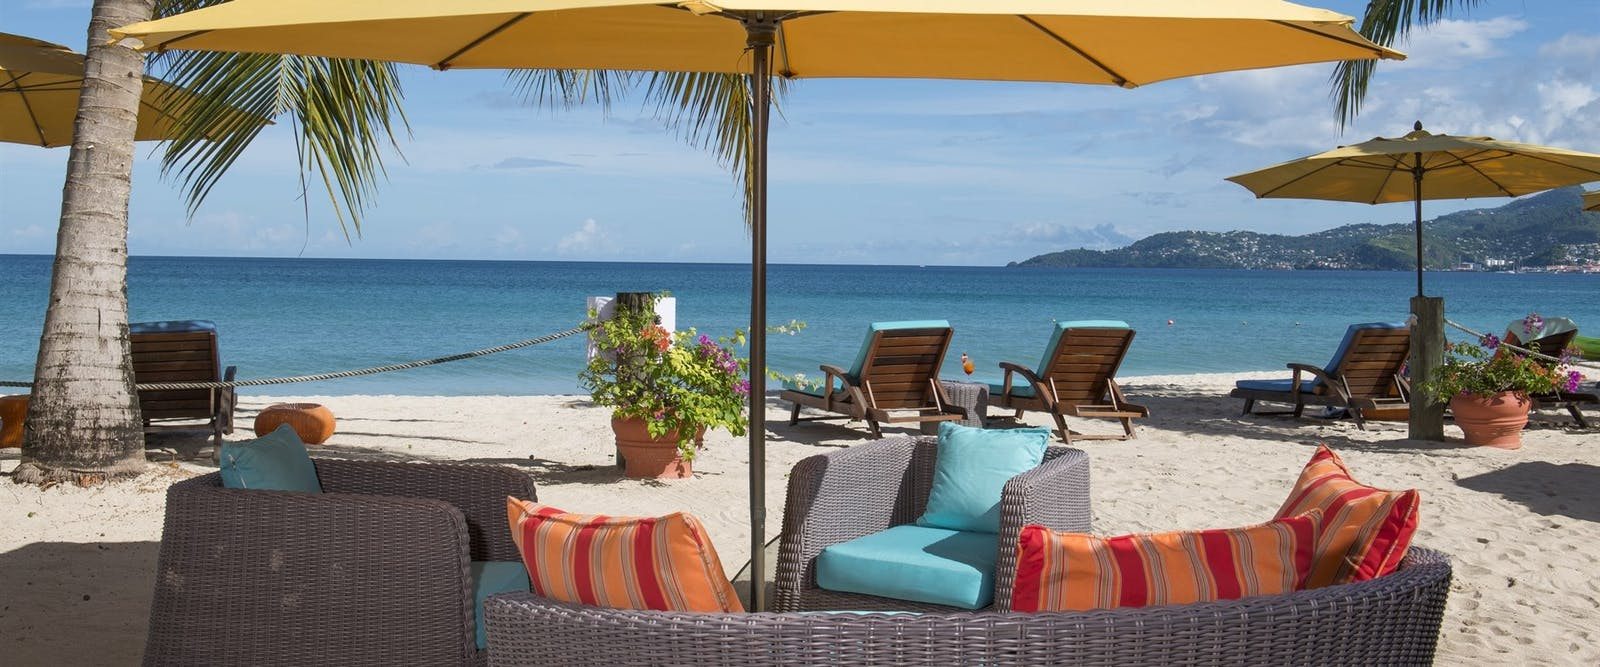 Beach Cabana at Mount Cinnamon, Grenada